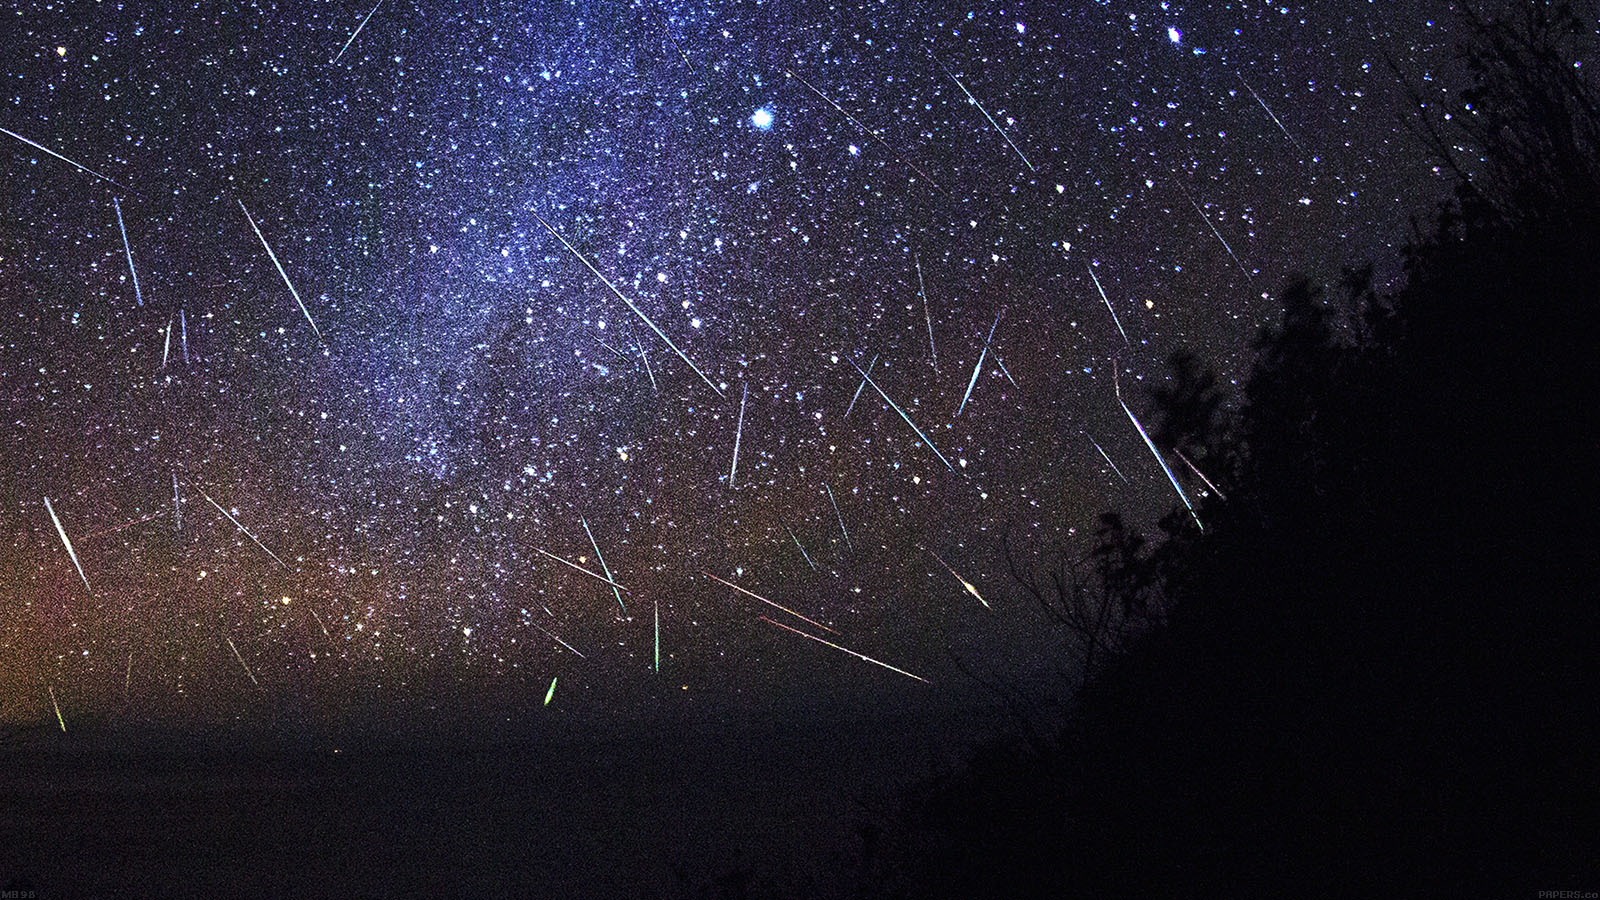 mb98-wallpaper-meteor-shower-sky-night - Papers.co